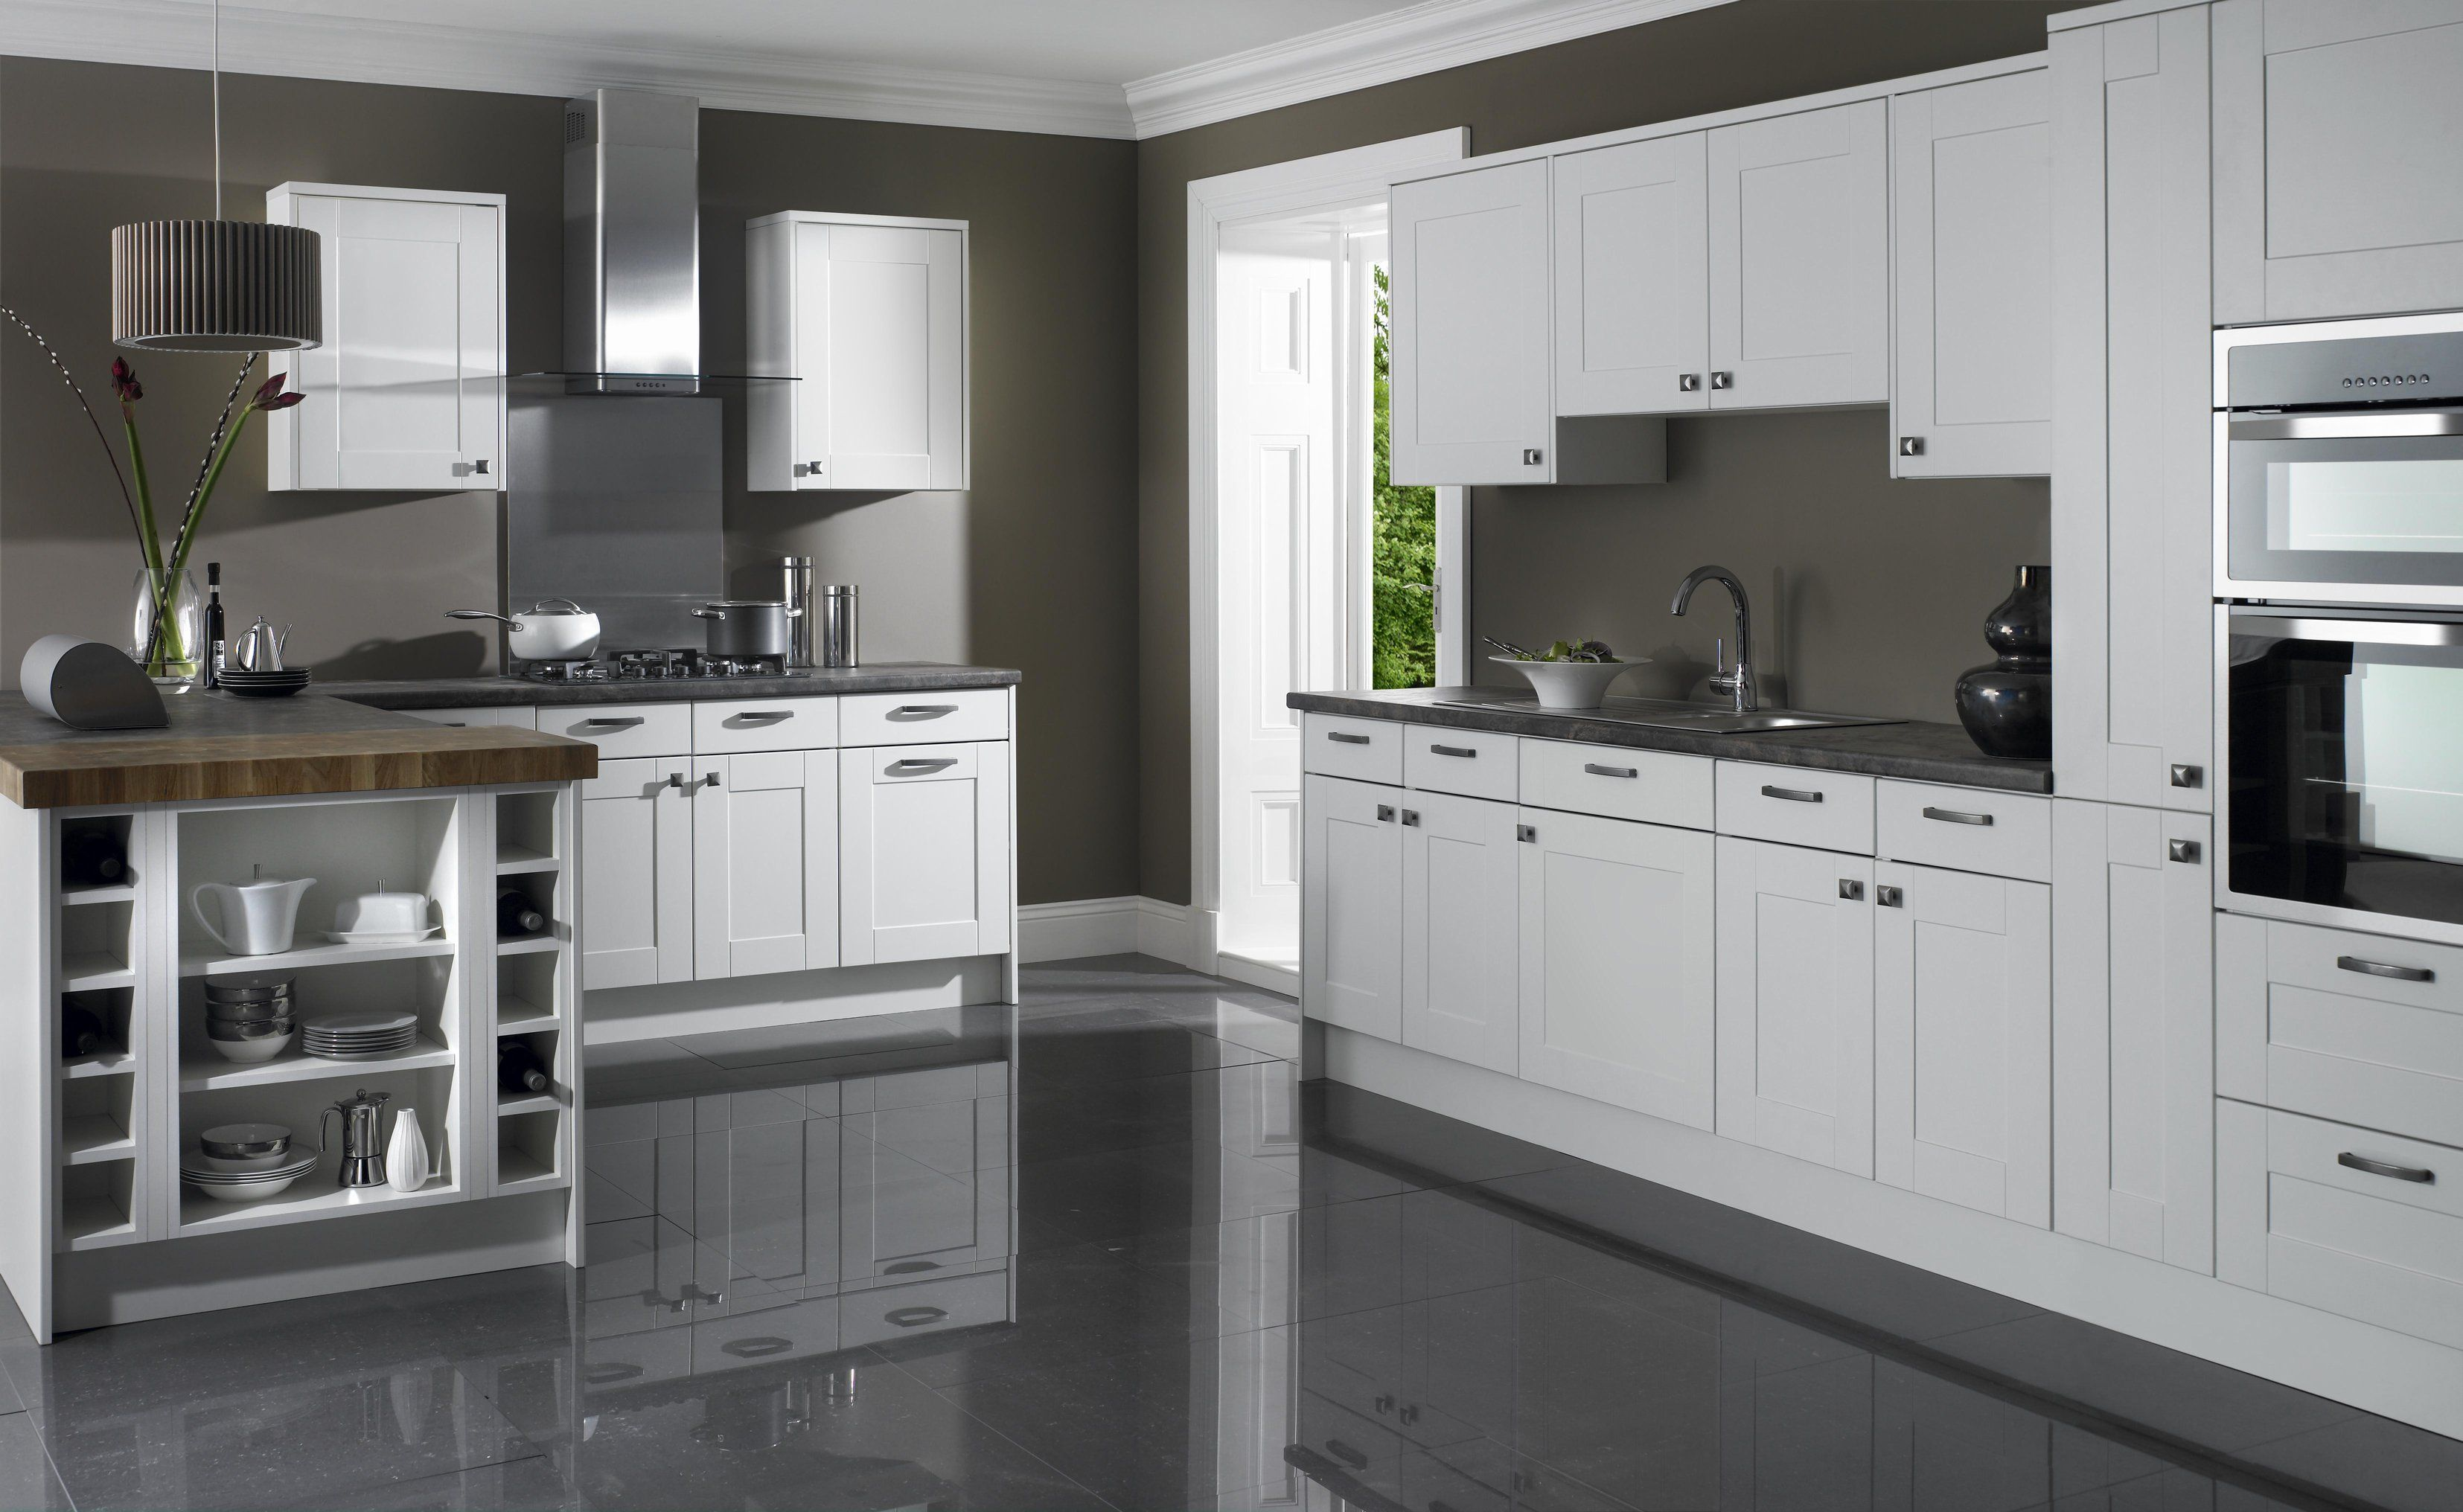 fine looking grey wall painted color schemes with white shaker kitchen cabinets also grey gloss floor tiled in grey and white kitchen designs